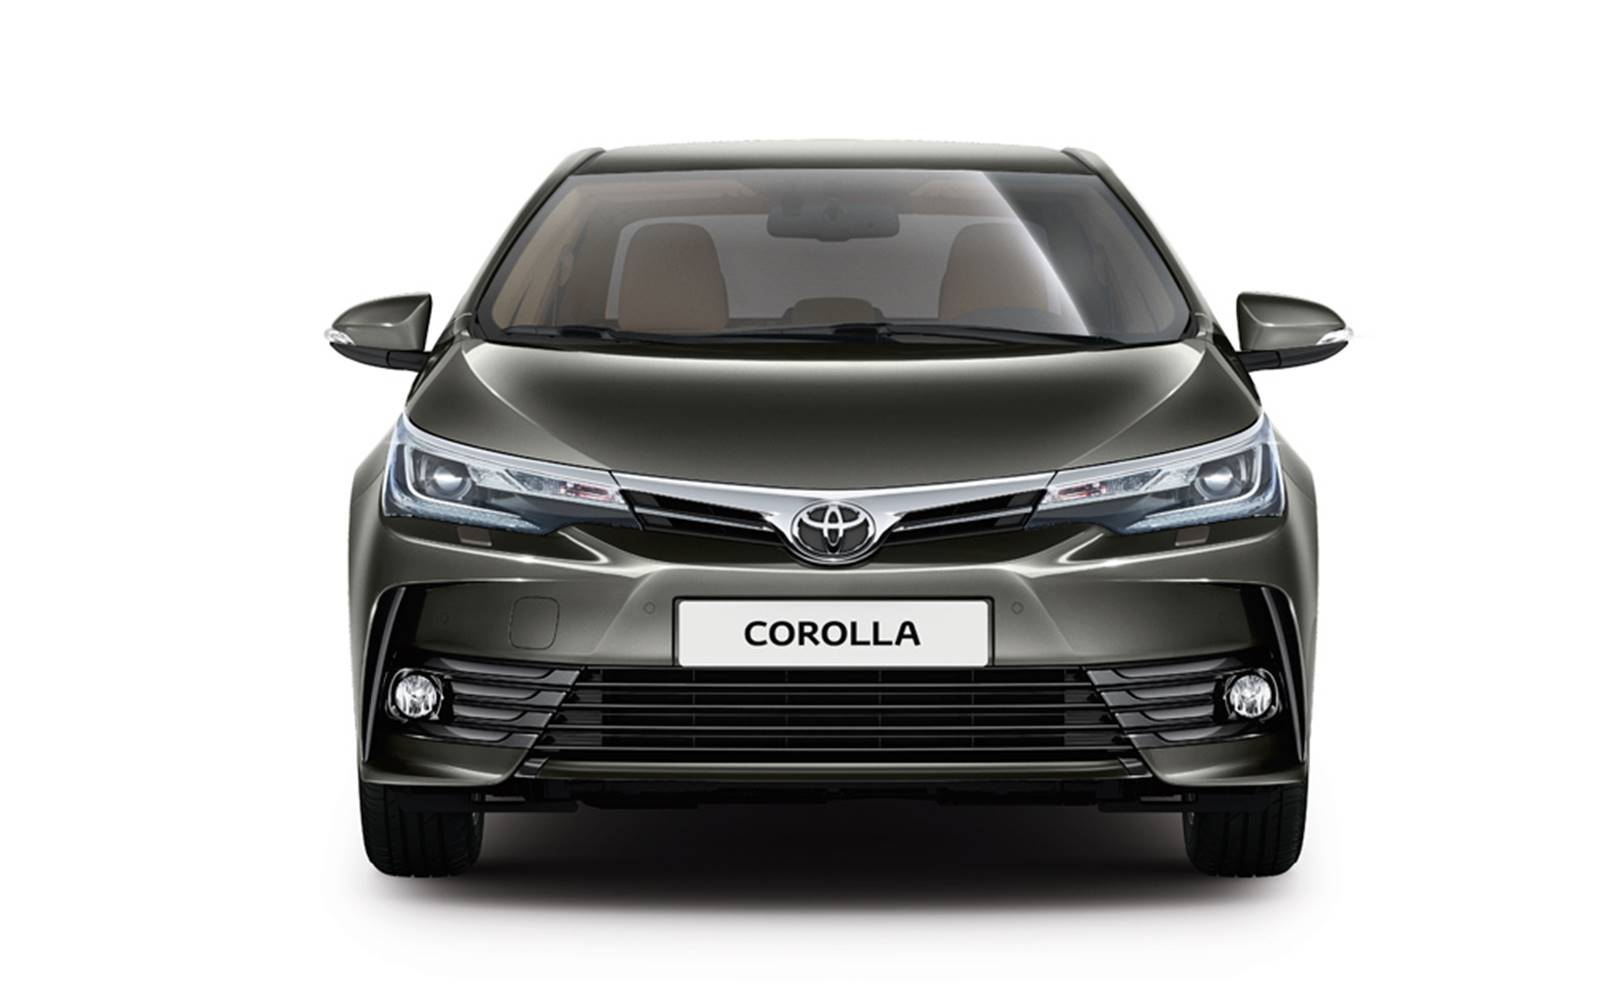 novo corolla 2017 chega europa pre o r reais car blog br. Black Bedroom Furniture Sets. Home Design Ideas